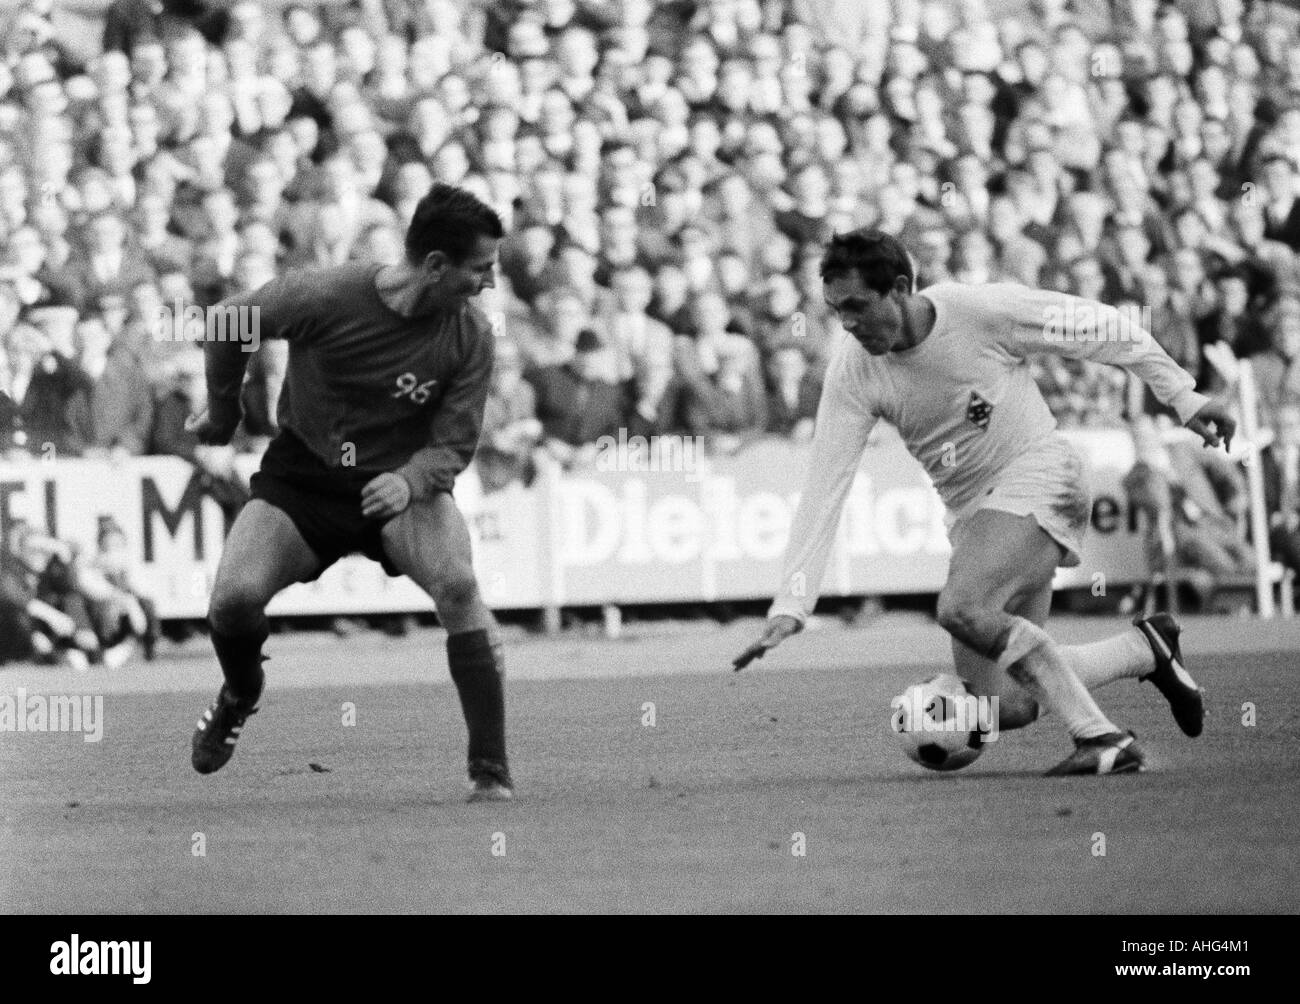 football, Bundesliga, 1967/1968, Borussia Moenchengladbach versus Hanover 96 5:1, Boekelberg Stadium, scene of the match, duel between Christian Breuer (Hannover, left) and Peter Meyer (MG) - Stock Image